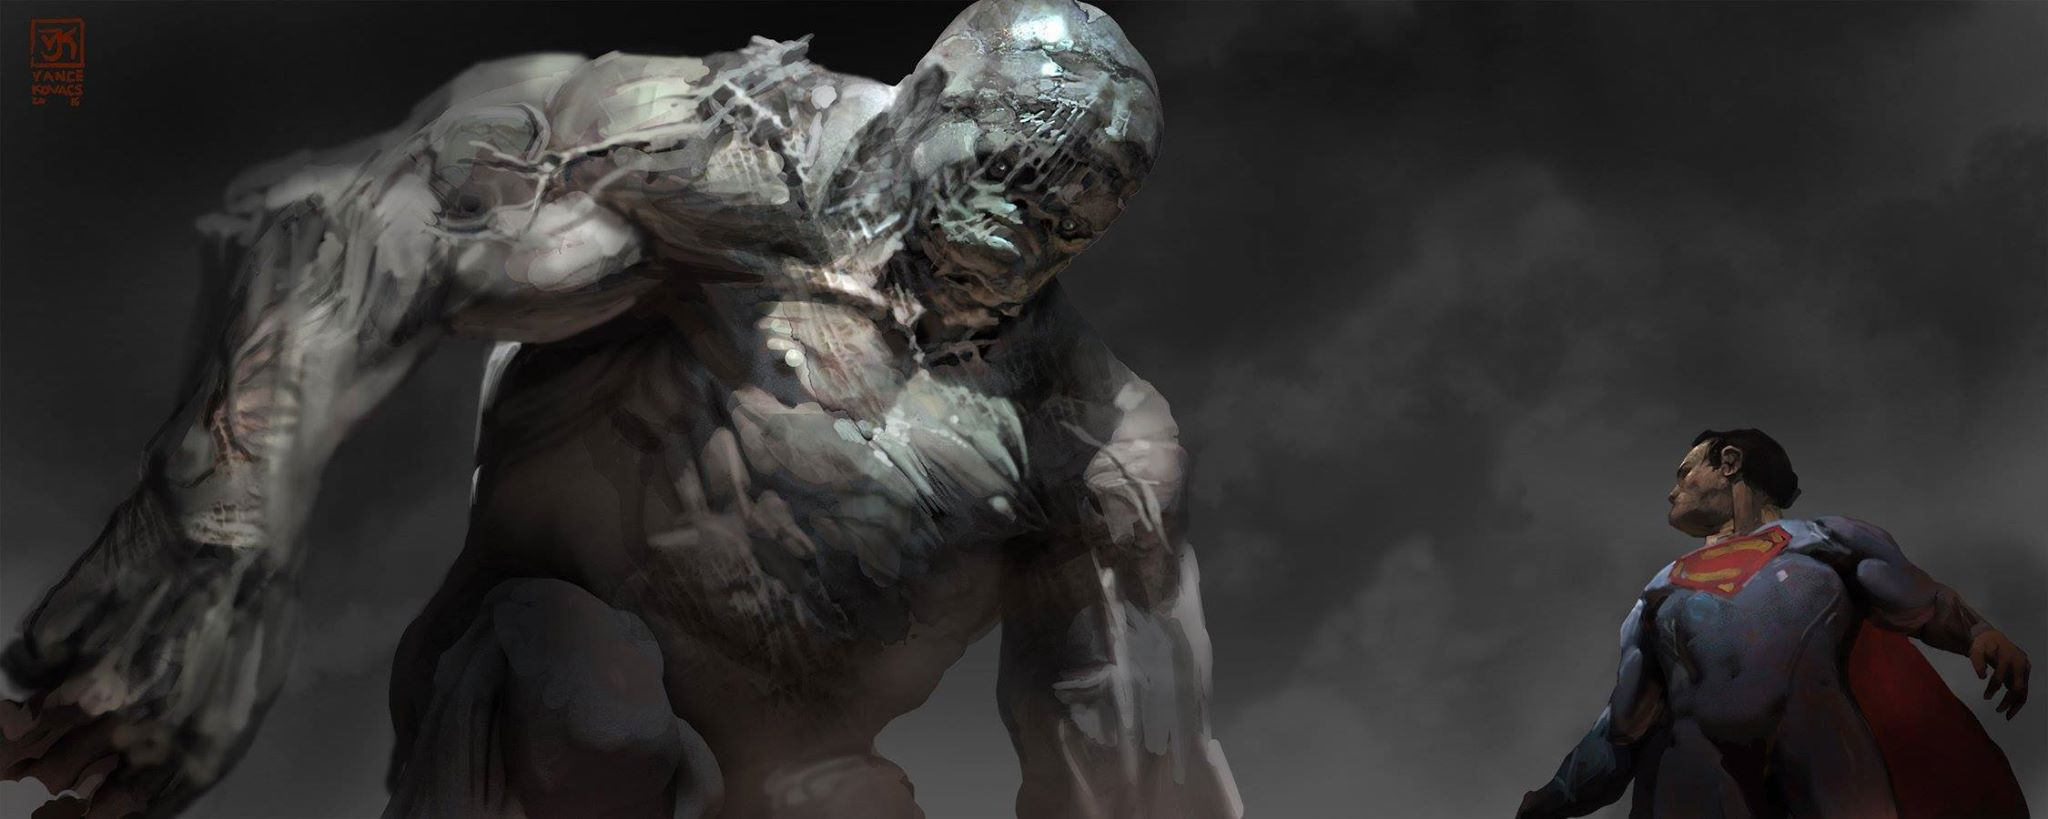 Batman v Superman: Dawn of Justice Concept Art by Vance Kovacs